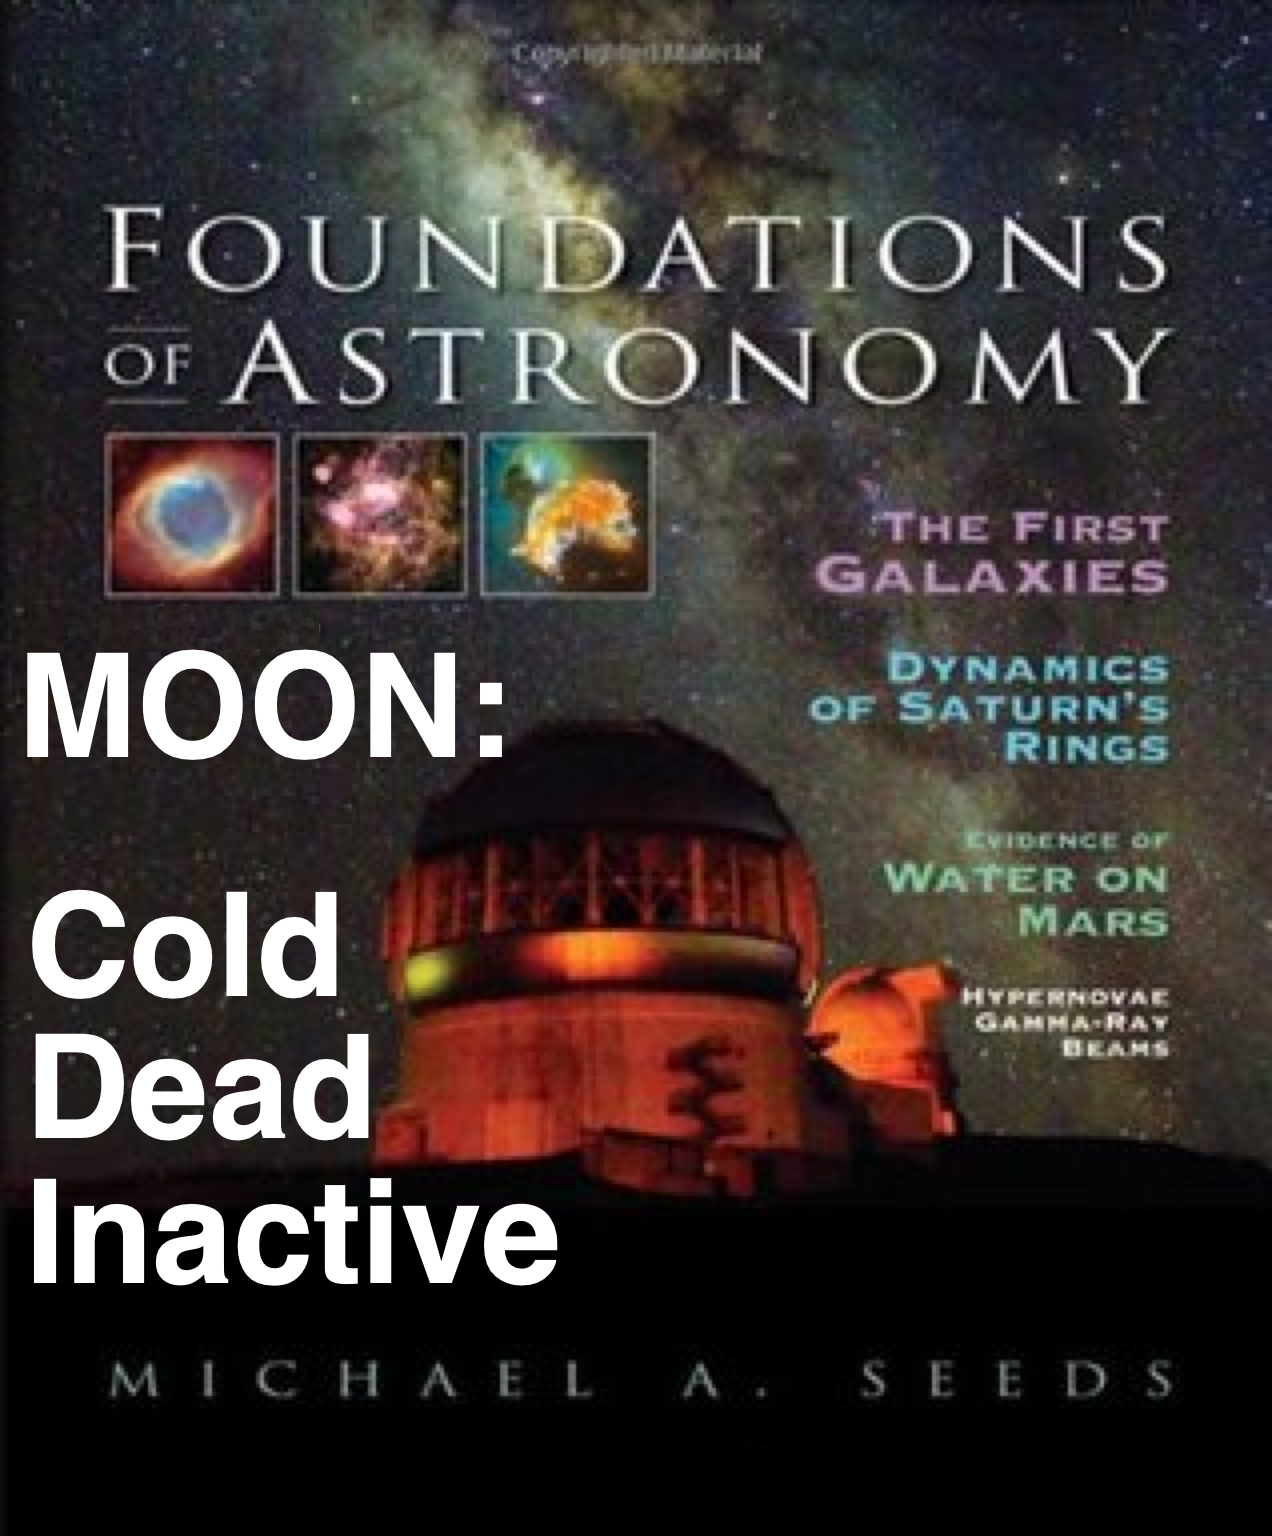 Michael Seeds popular textbook: Moon is cold, dead, inactive